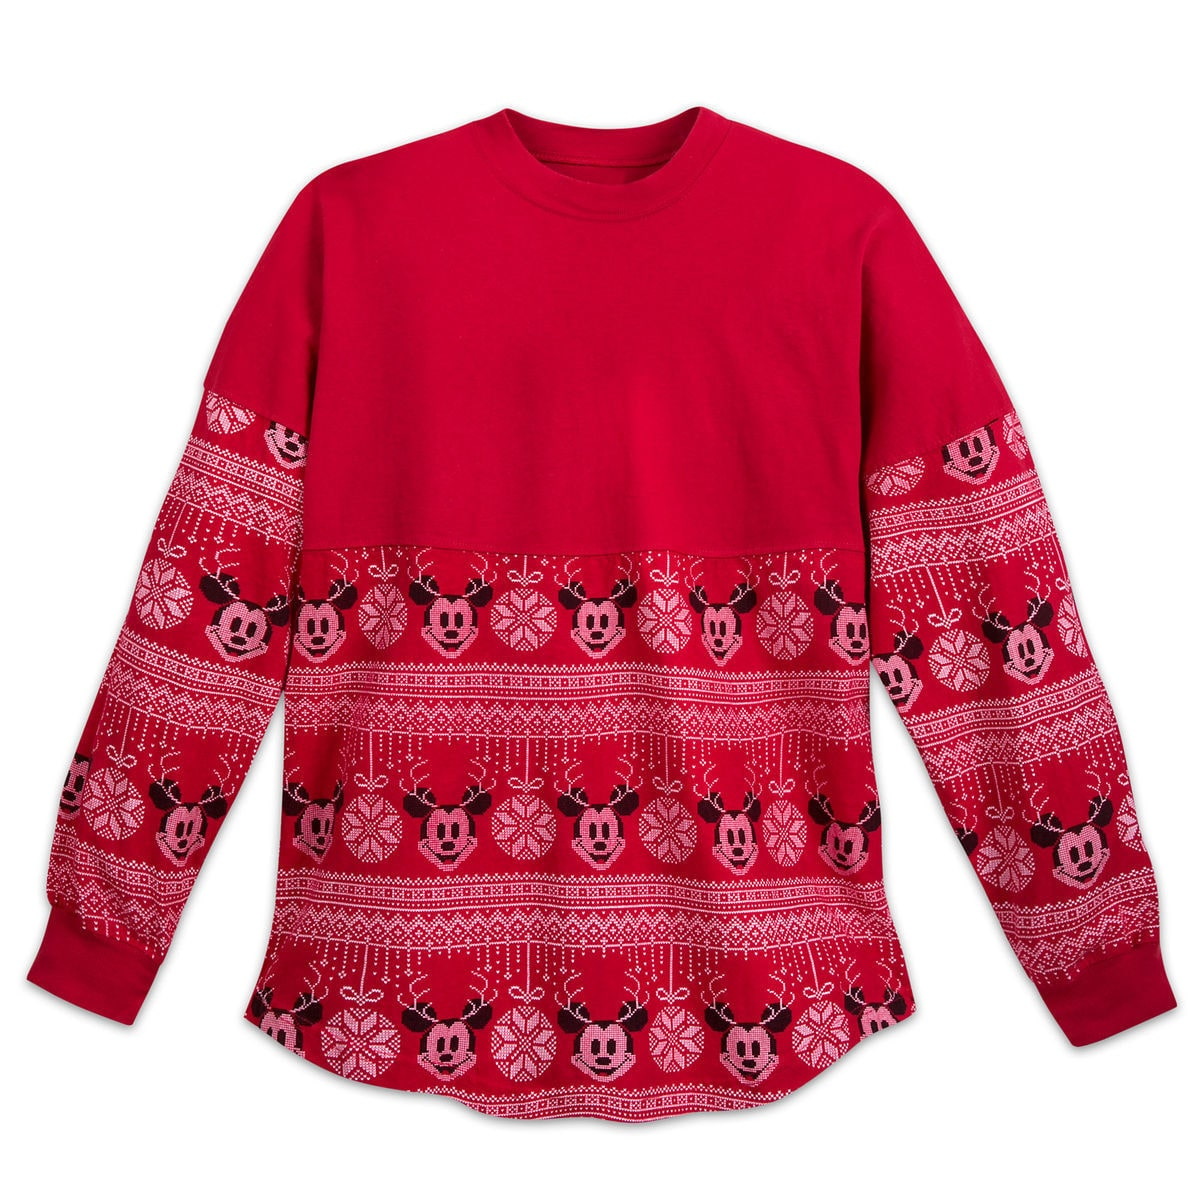 mickey mouse holiday spirit jersey for adults shopdisney